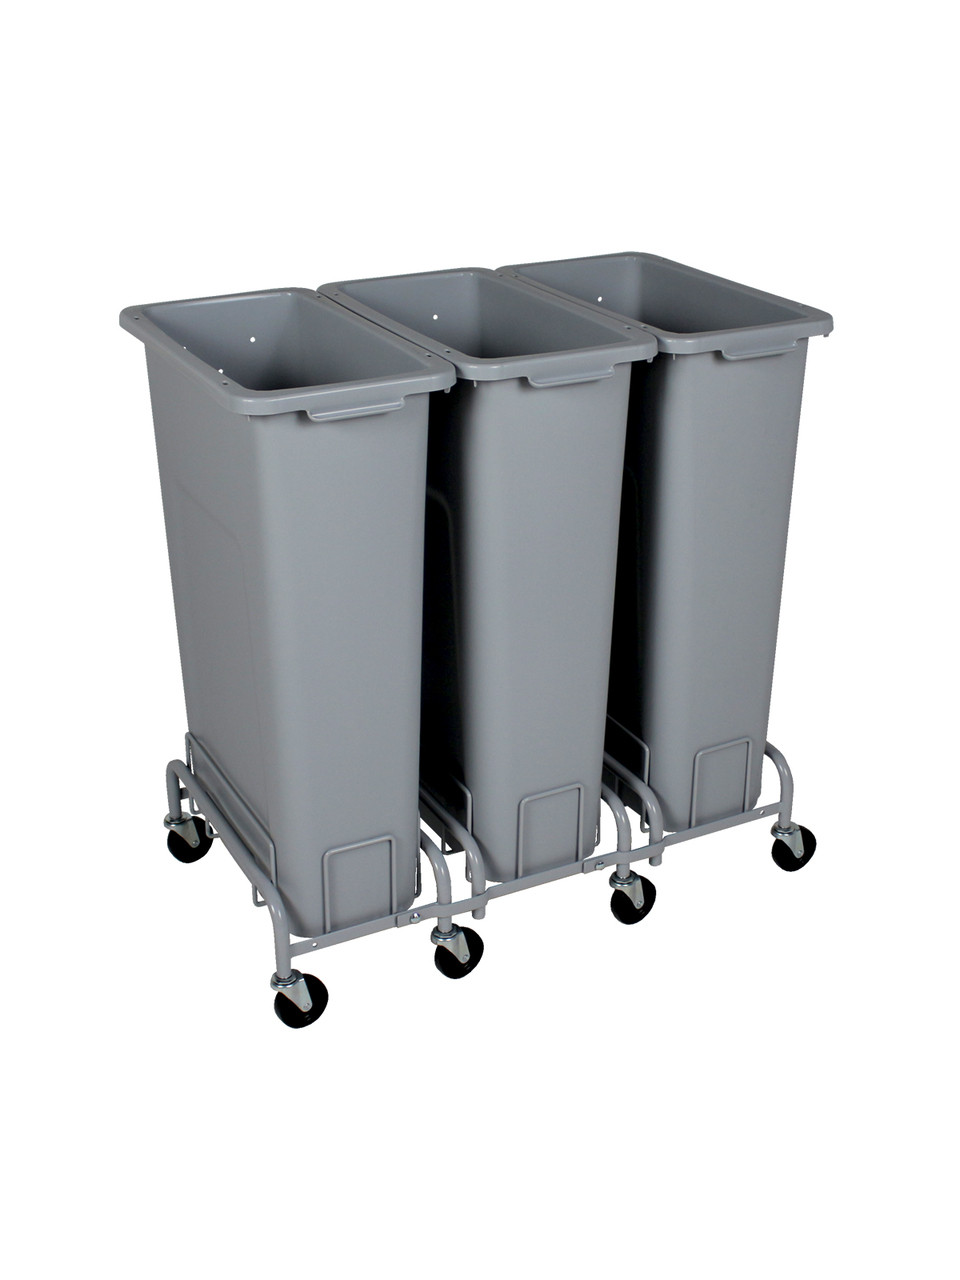 69 Gallon Plastic Skinny Trash Cans with Wheels Combo (4 Color Choices)